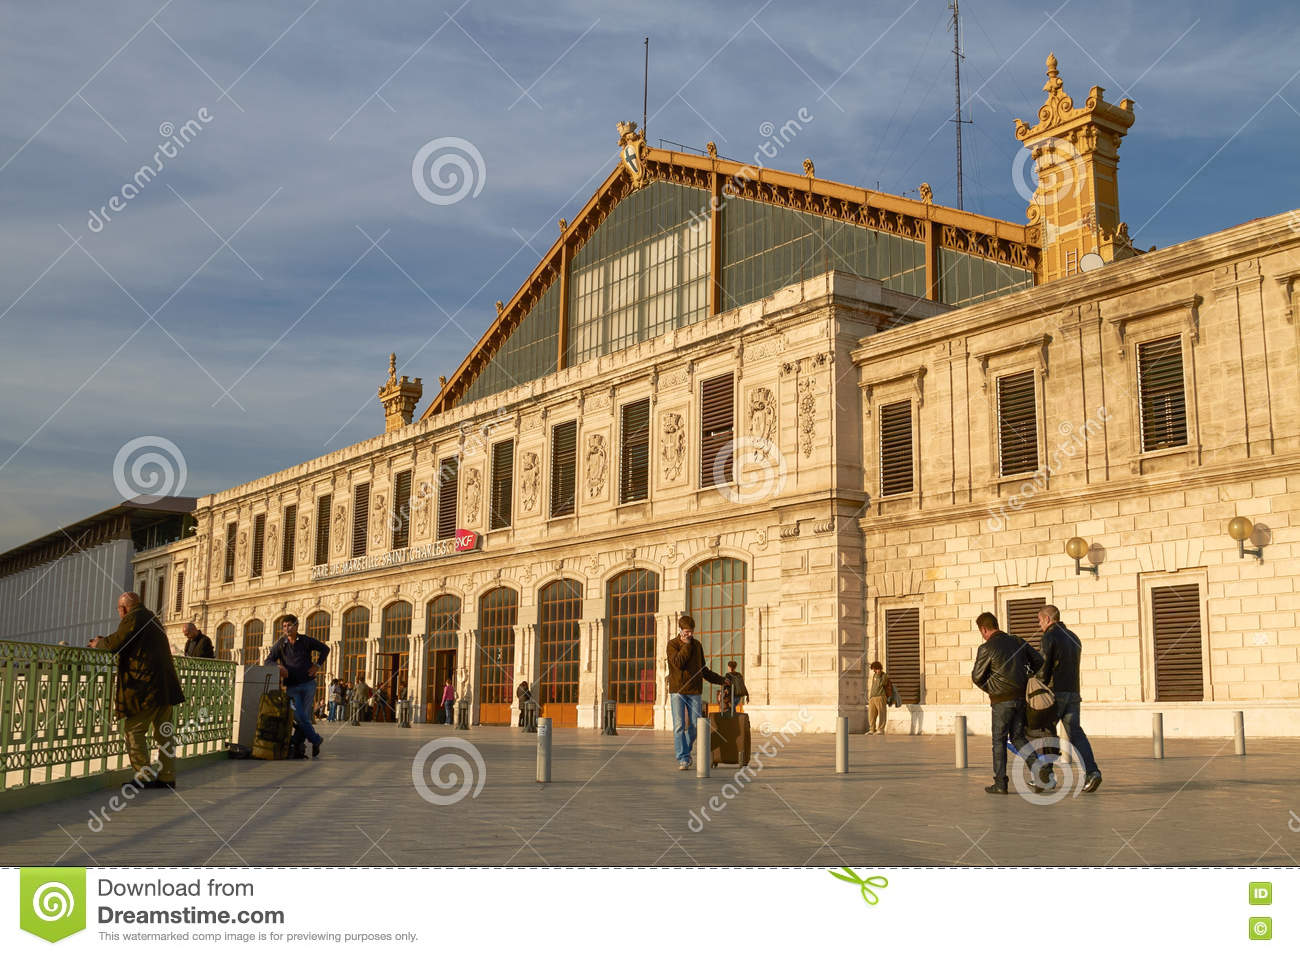 People Arriving to Saint Charles Train Station in Marseille, France